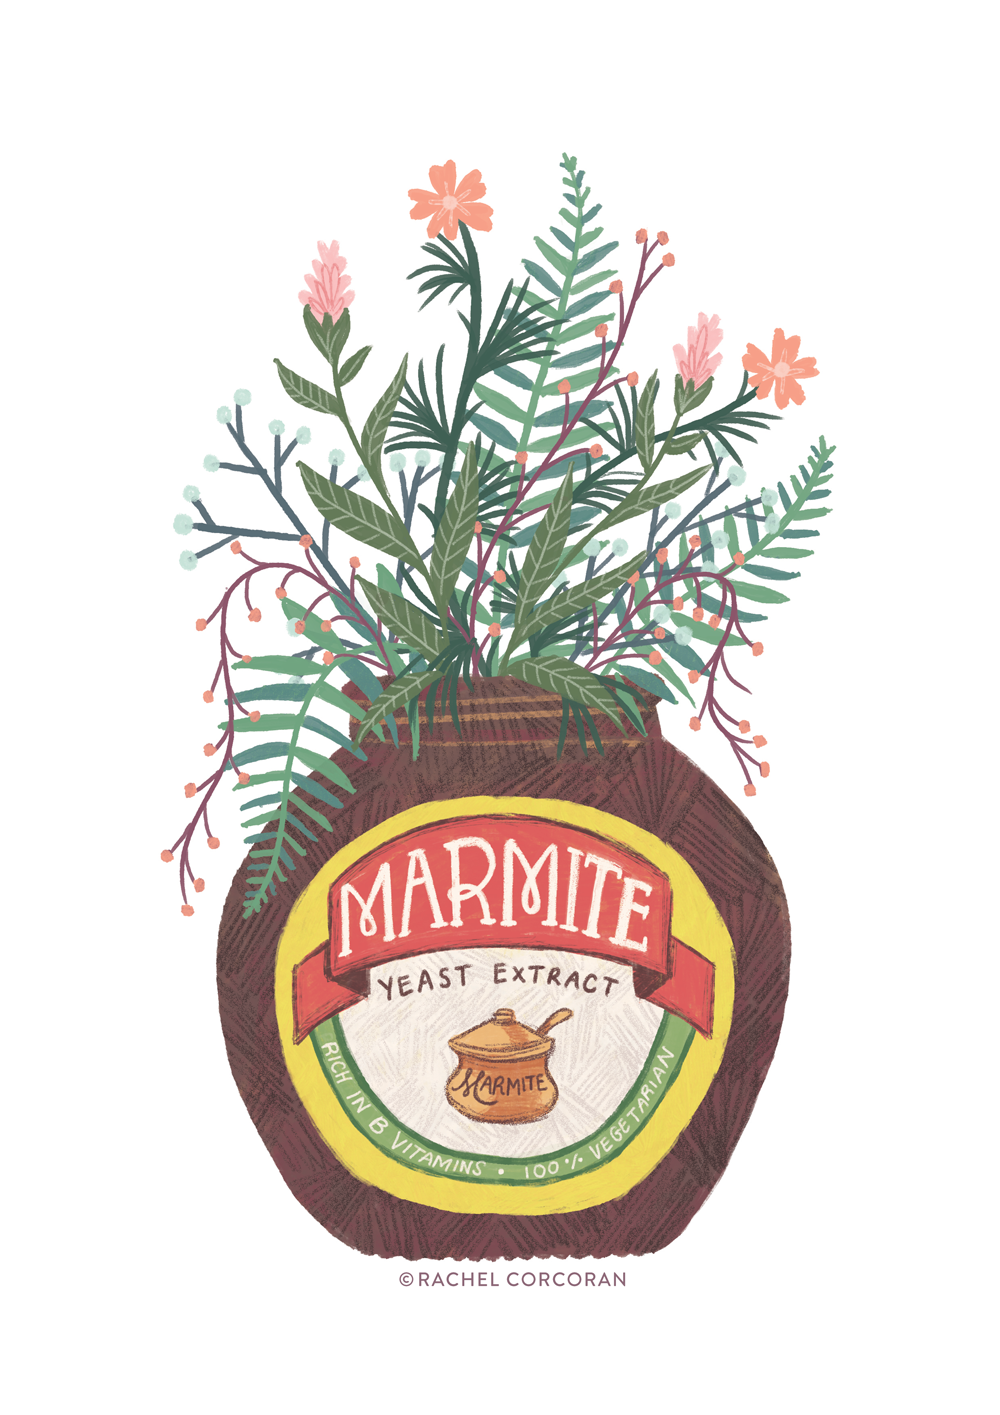 Marmite Bouquet illustration by Rachel Corcoran